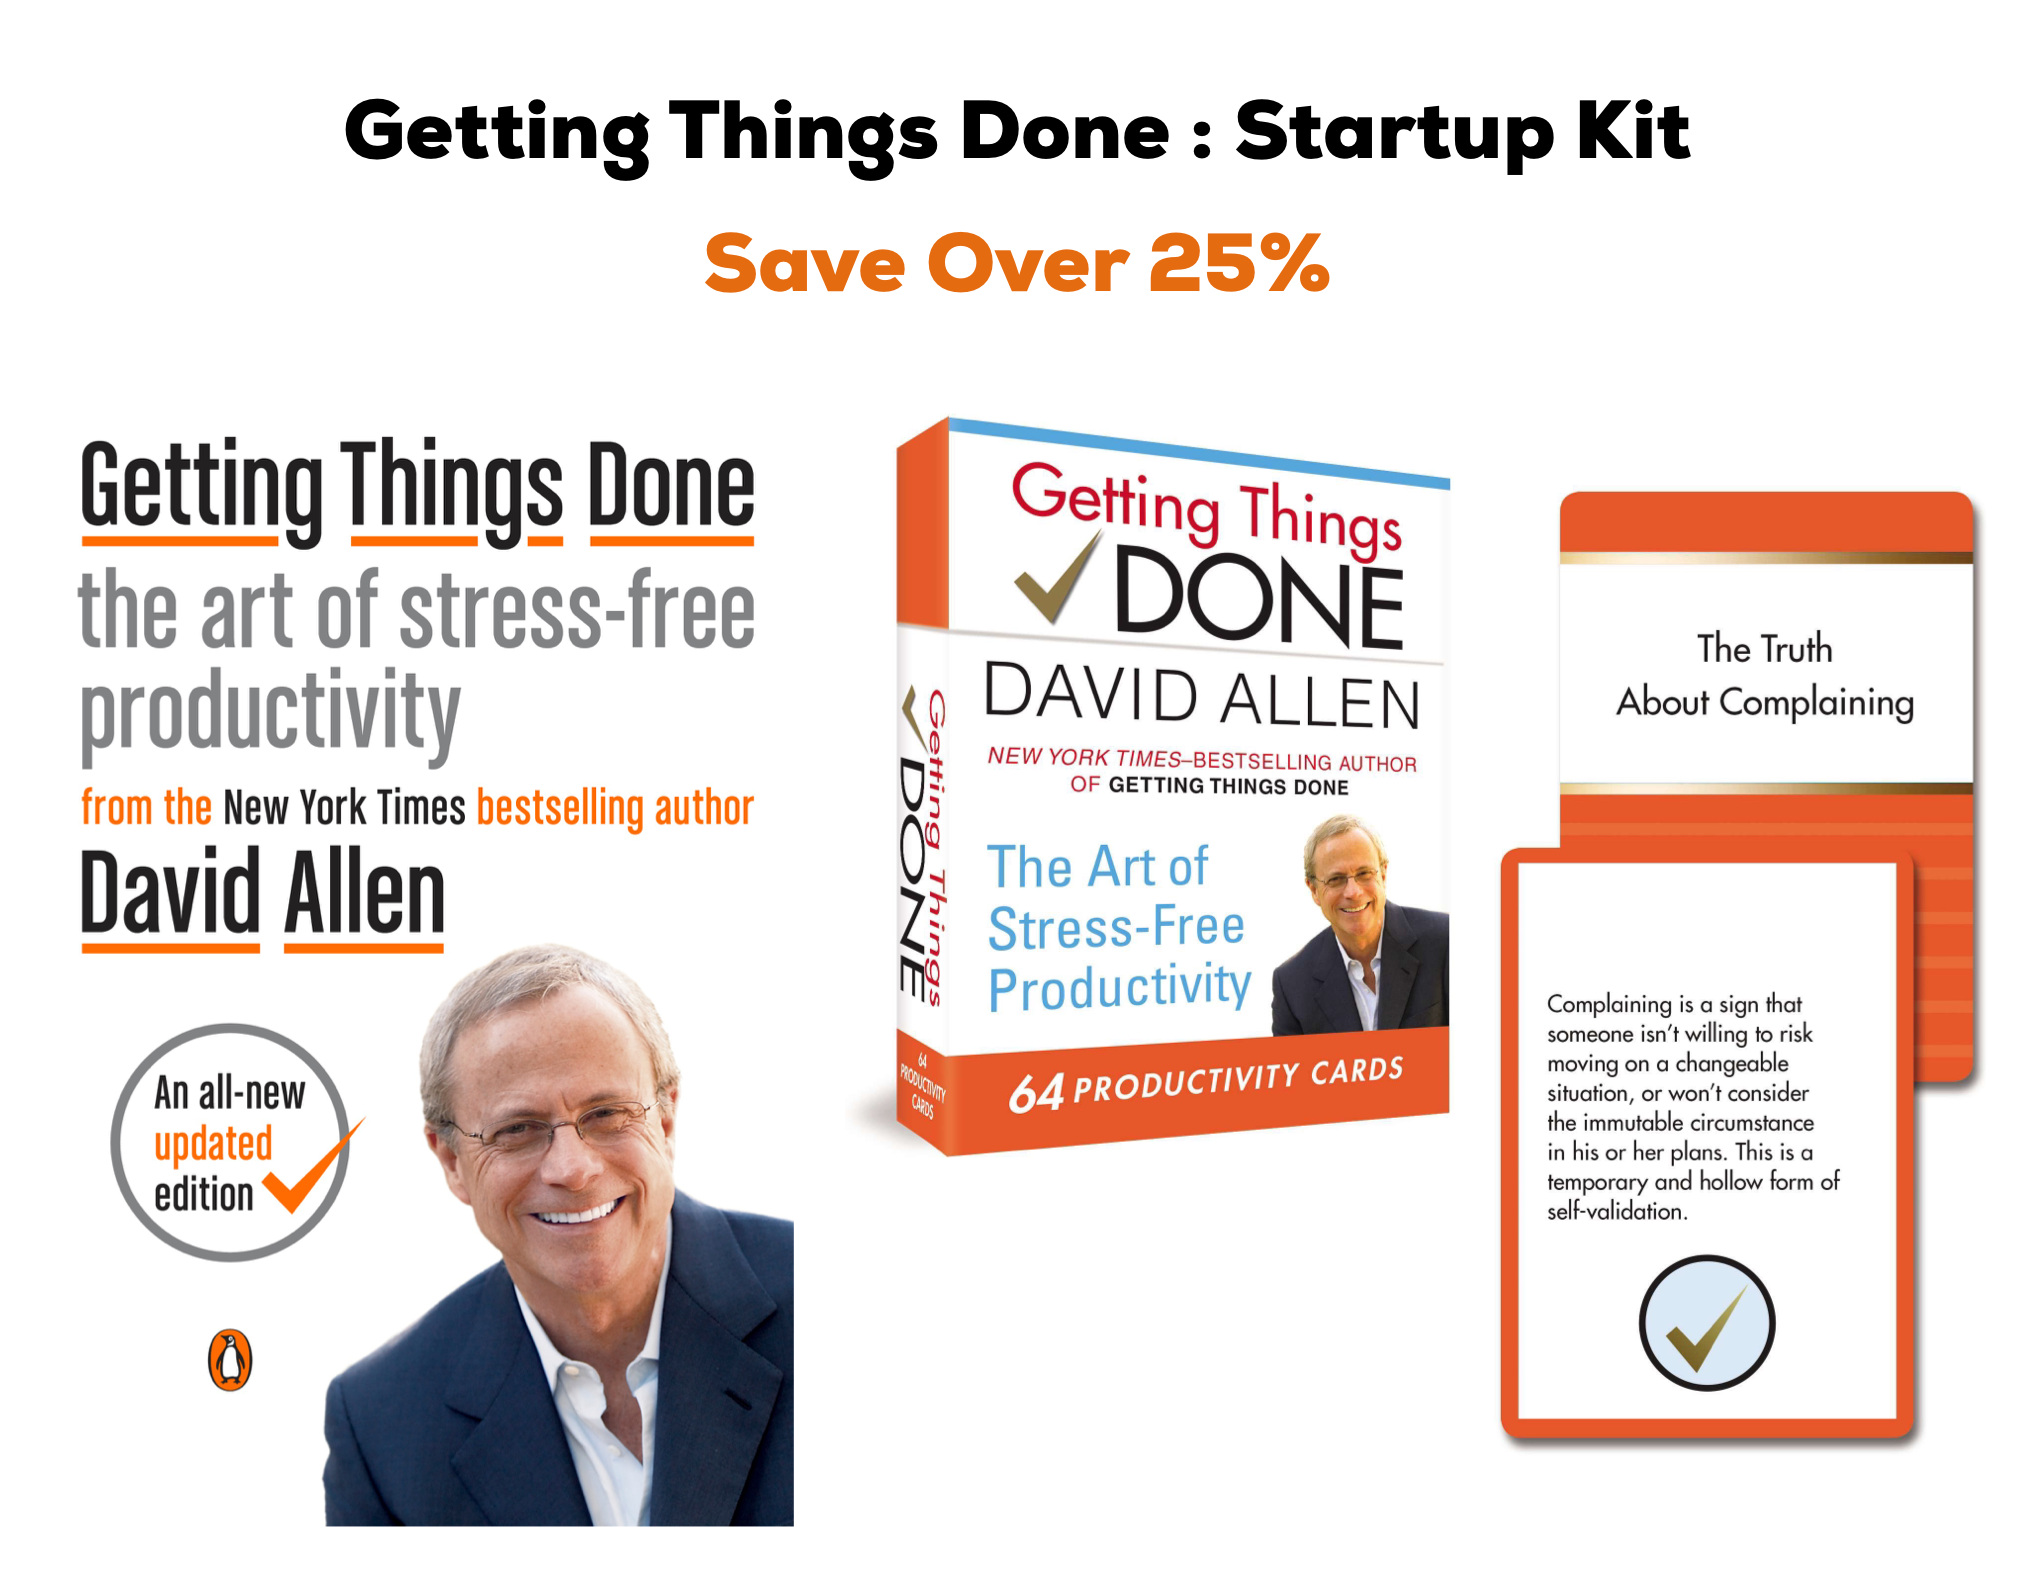 Getting Things Done Startup Kit  by David Allen